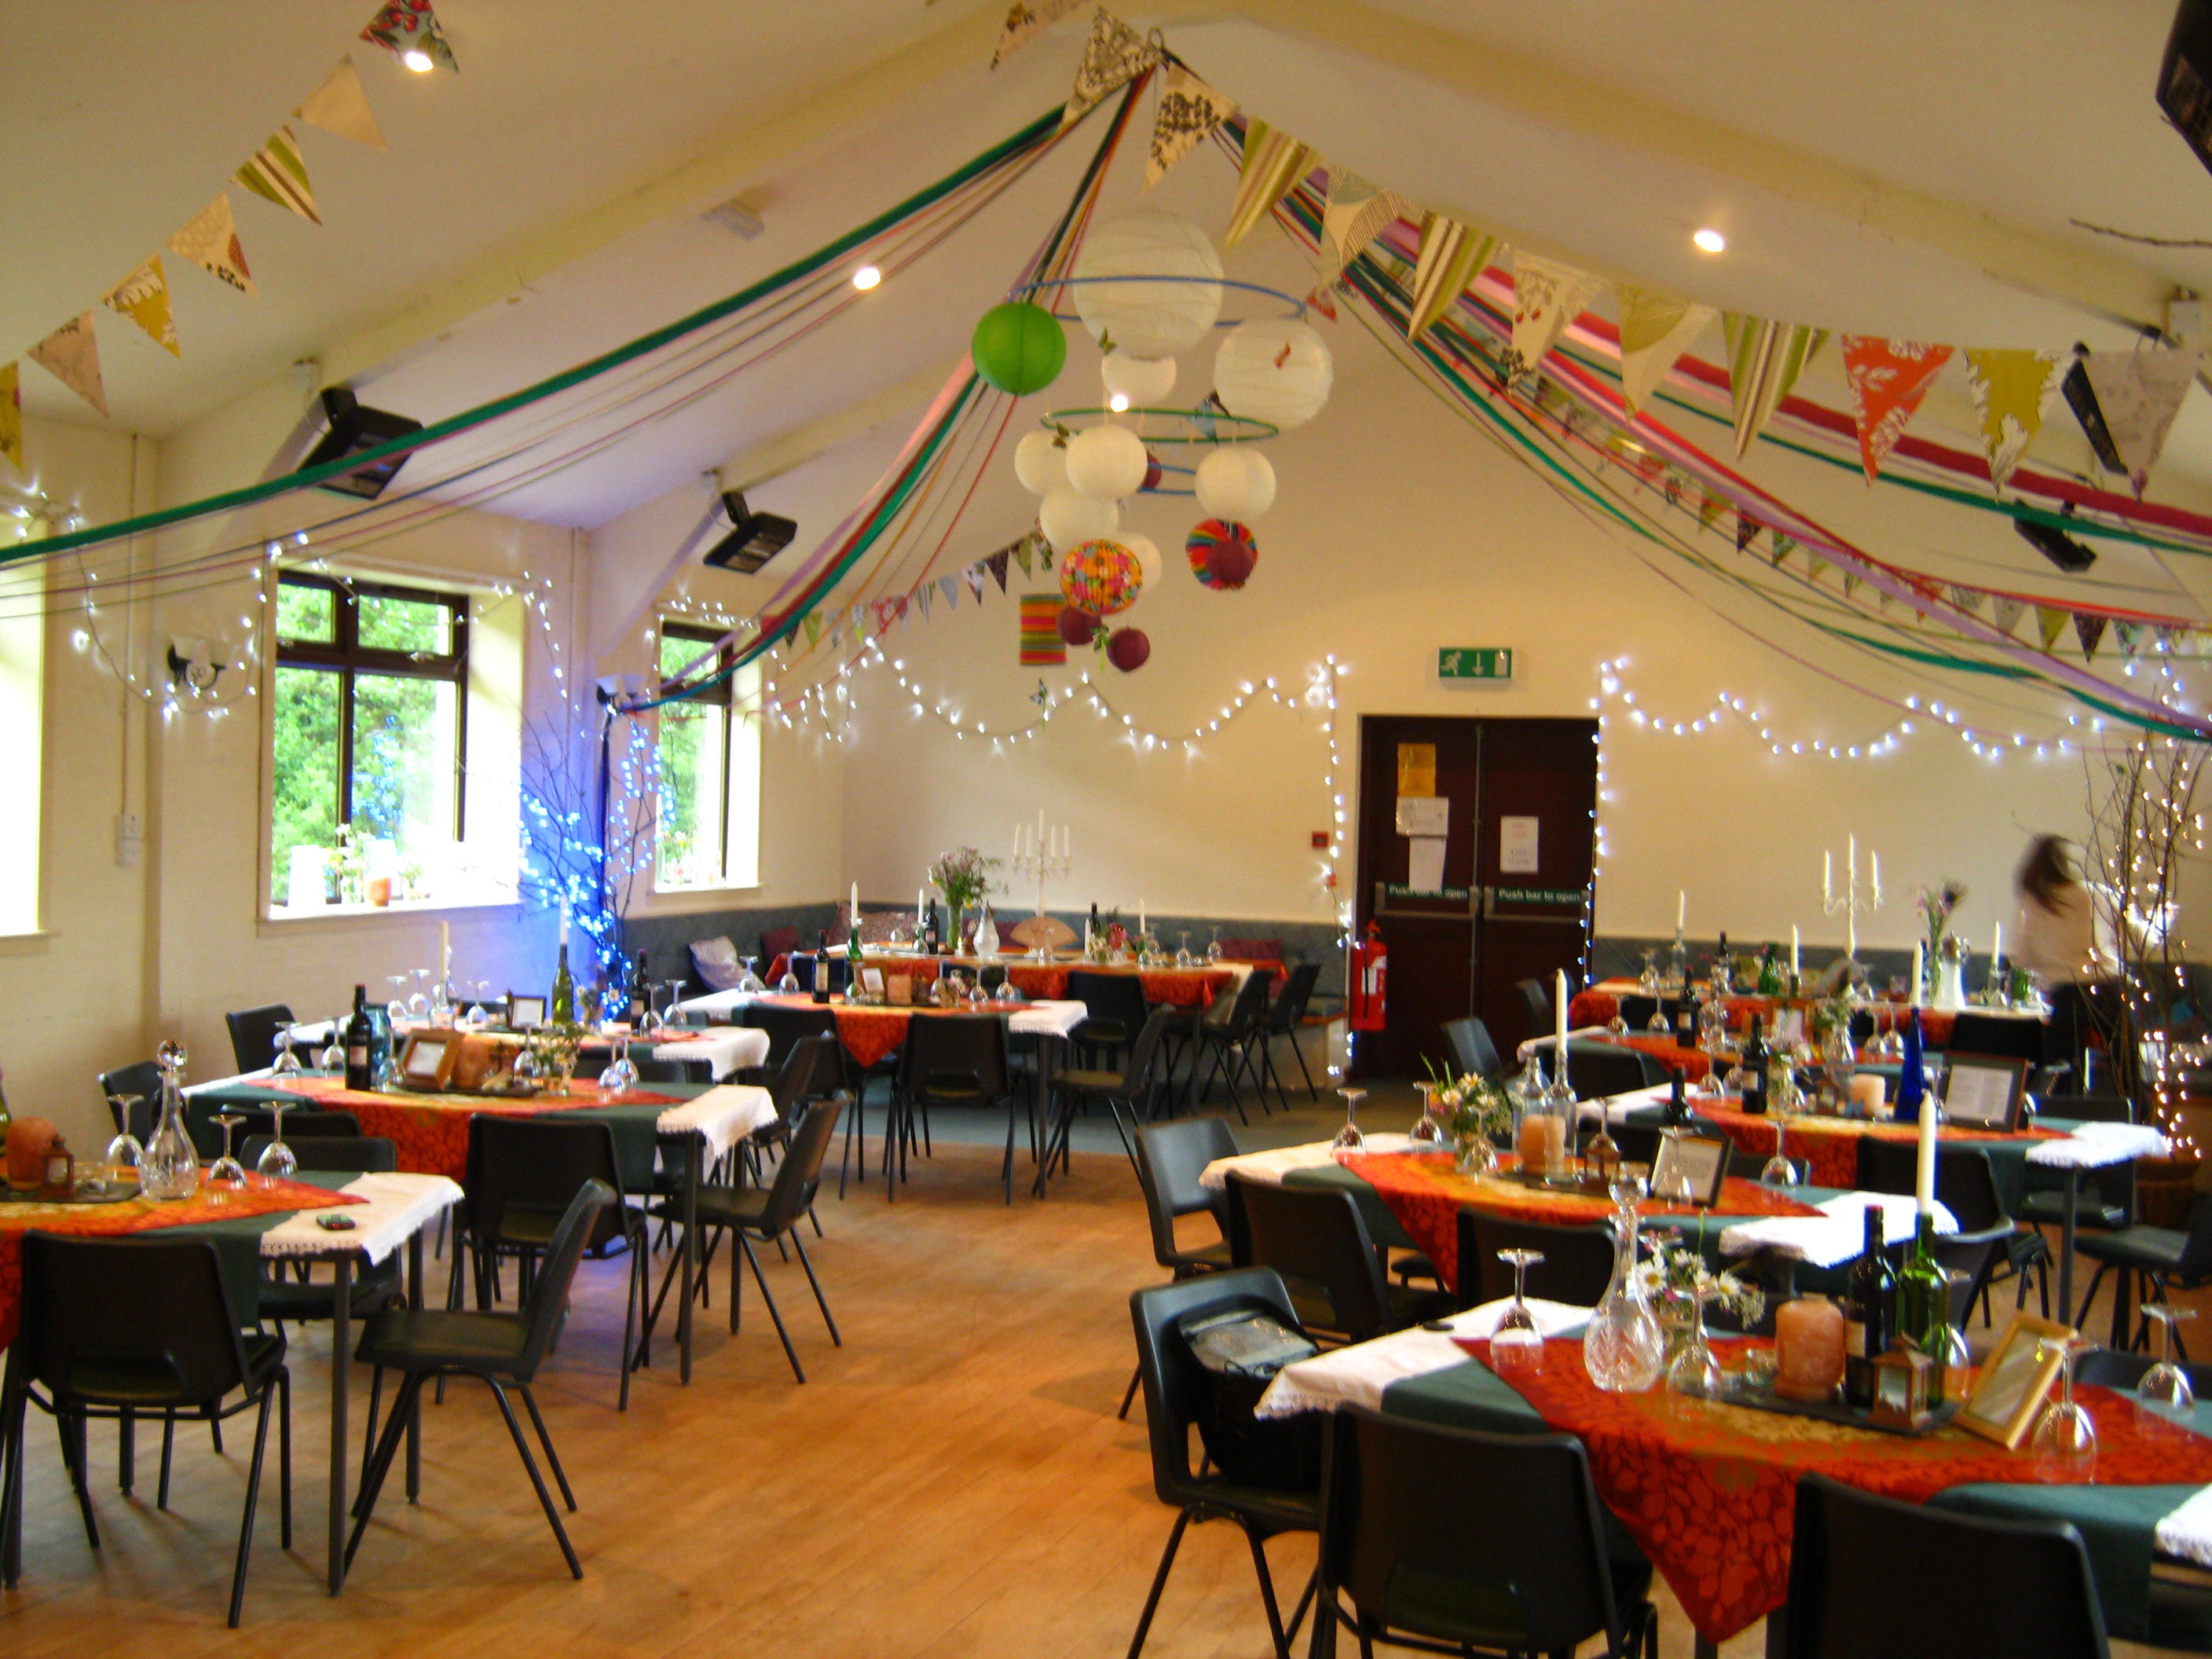 Port Of Menteith Village Hall Wedding 2012